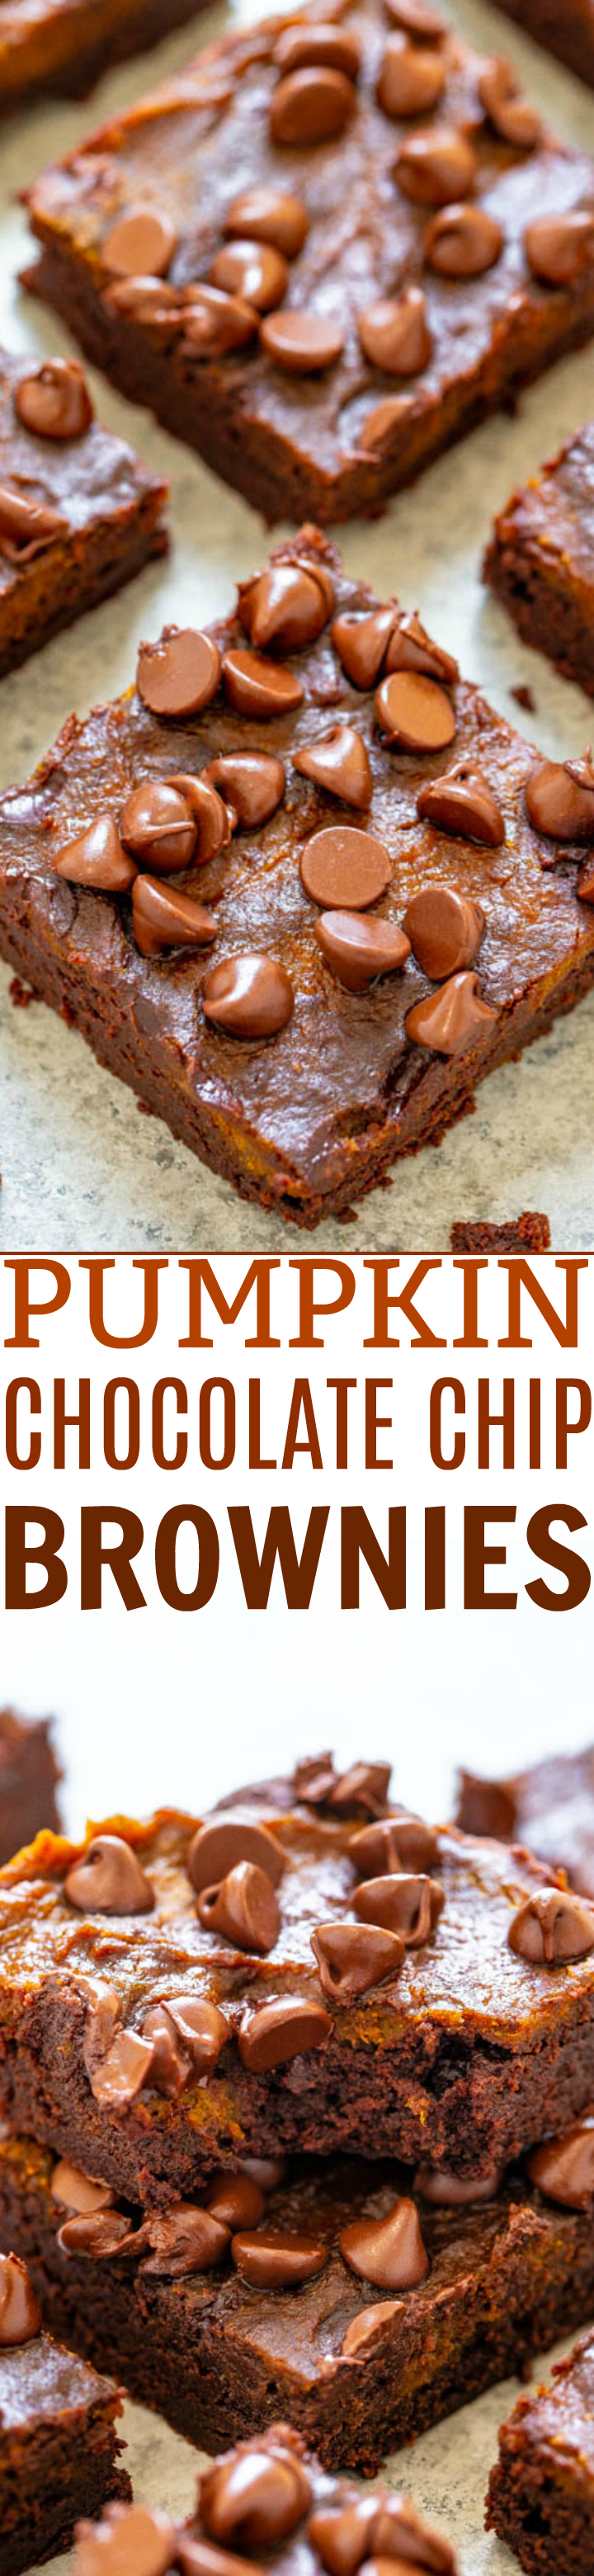 Pumpkin Chocolate Chip Brownies - Rich, fudgy brownies topped with pumpkin and chocolate chips!! An EASY, no mixer brownie recipe that's FASTER than using a boxed mix! Bring on pumpkin spice season!!